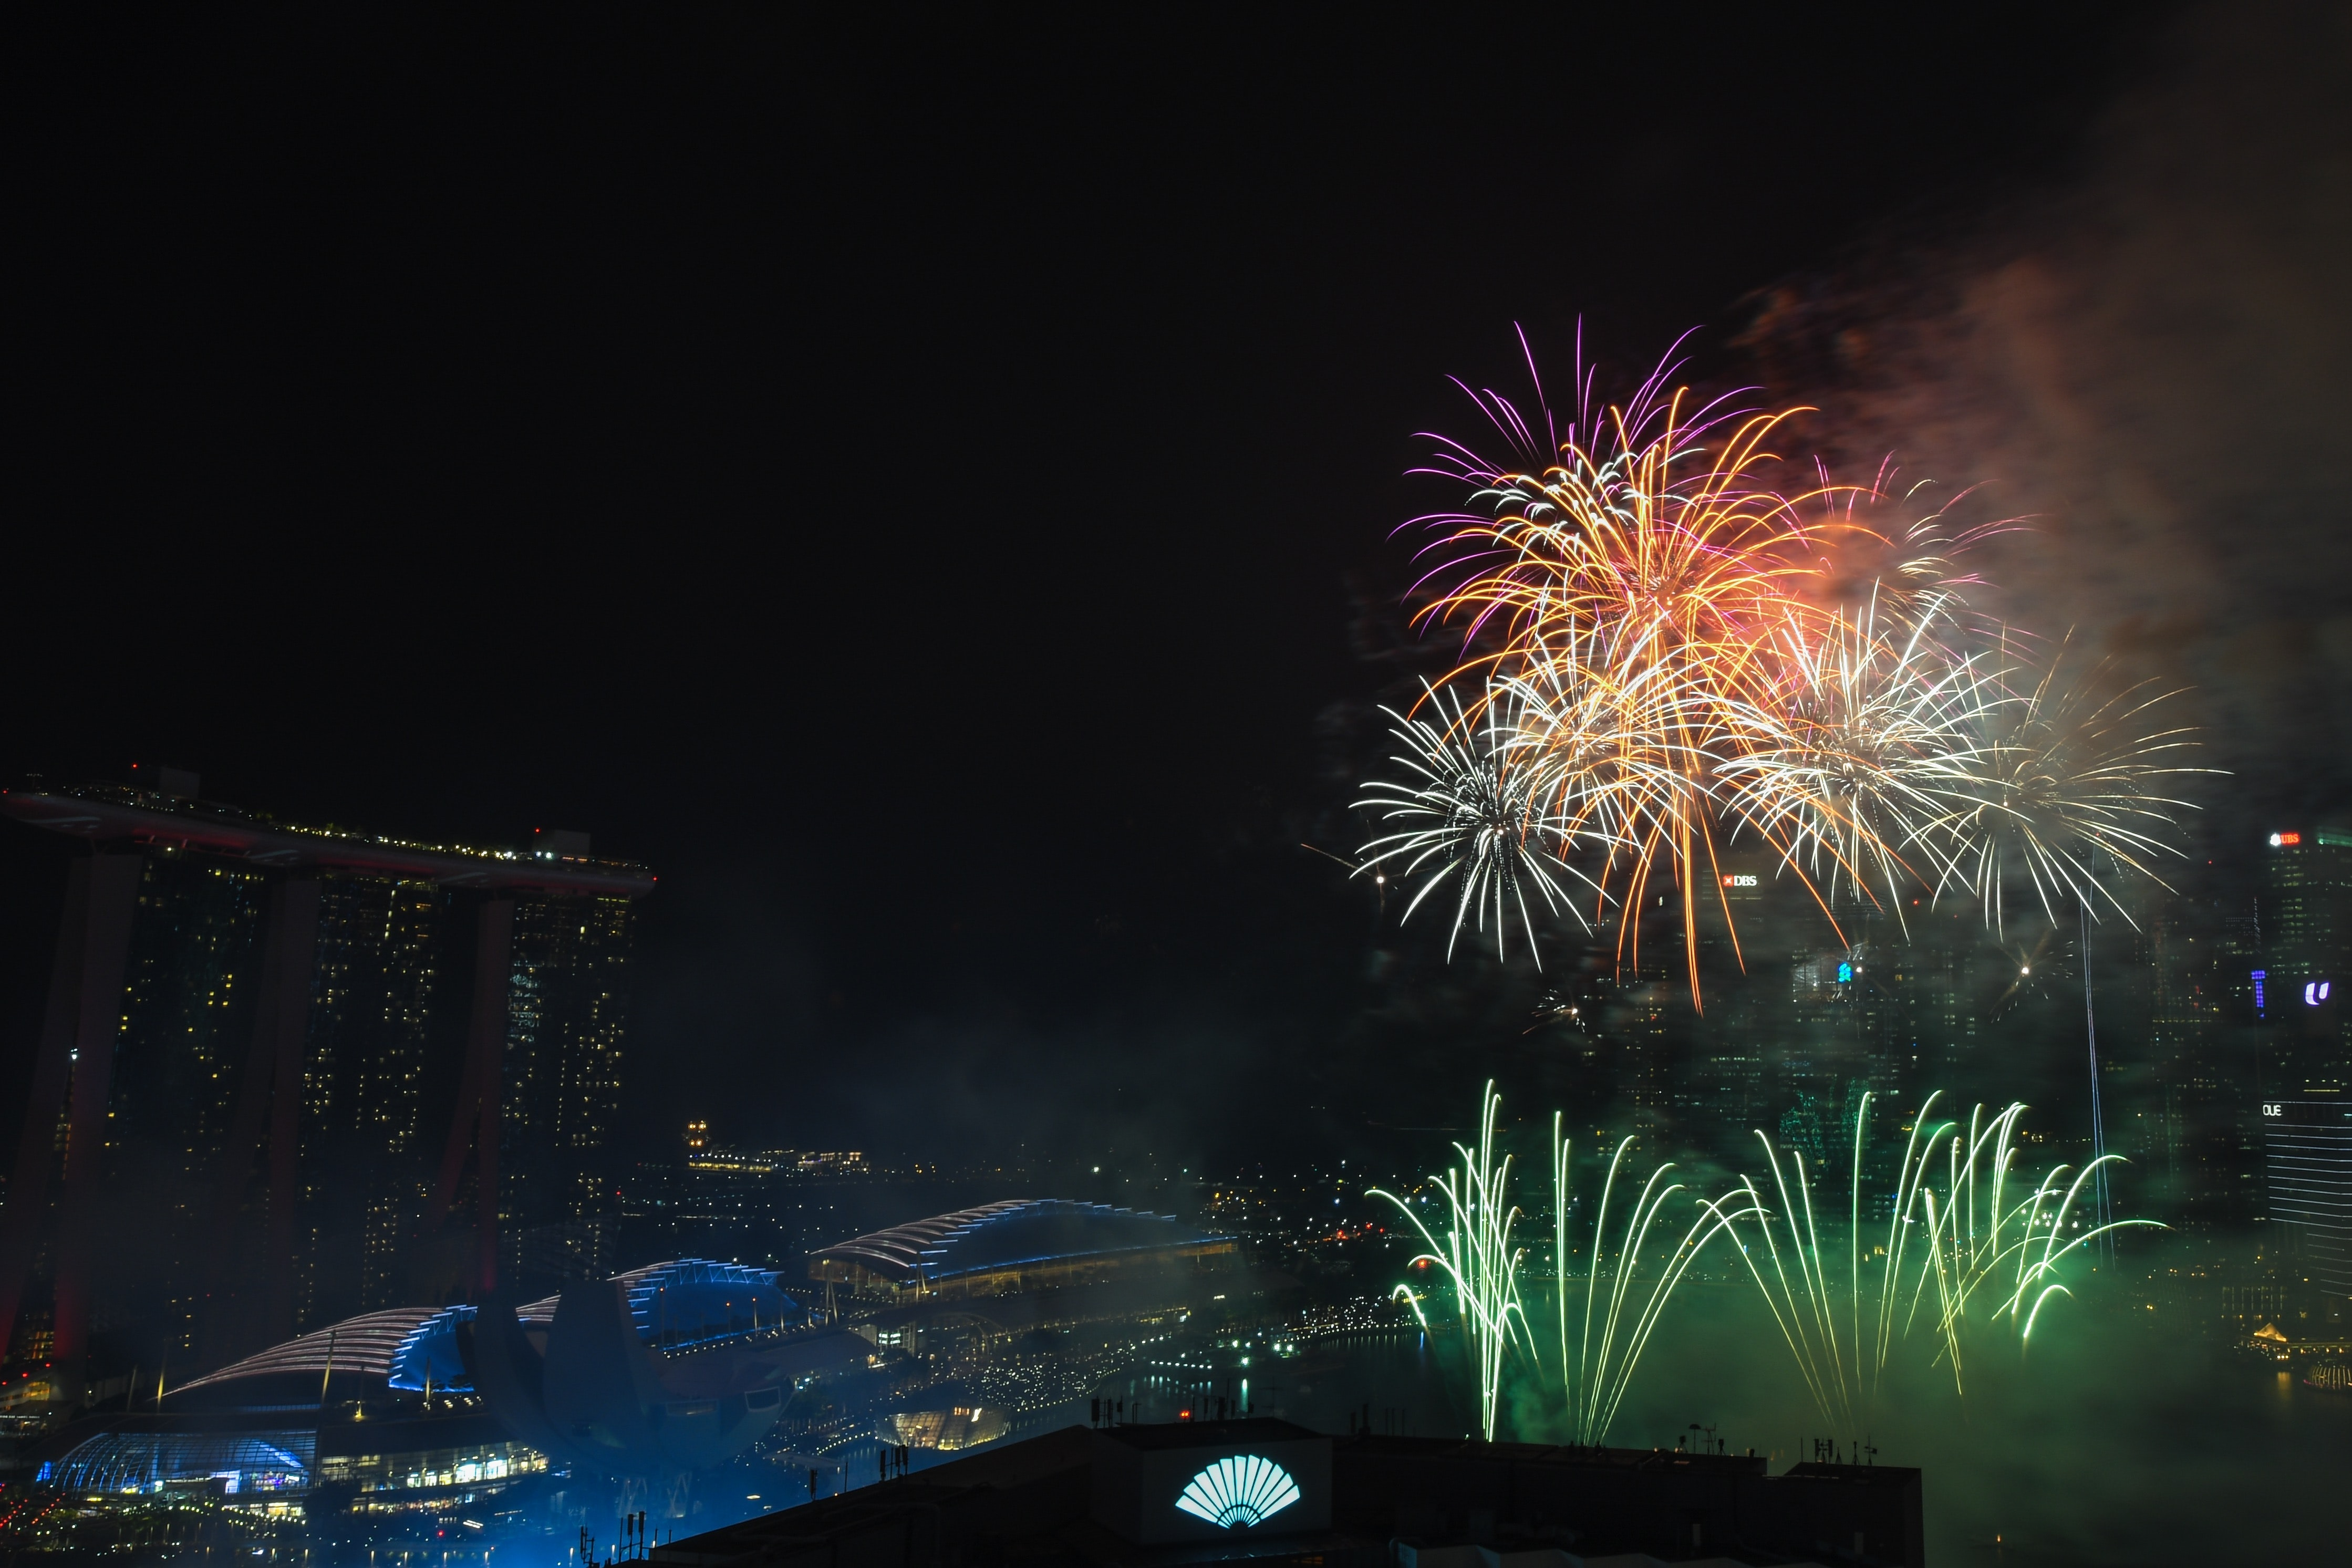 fireworks display view from top of building